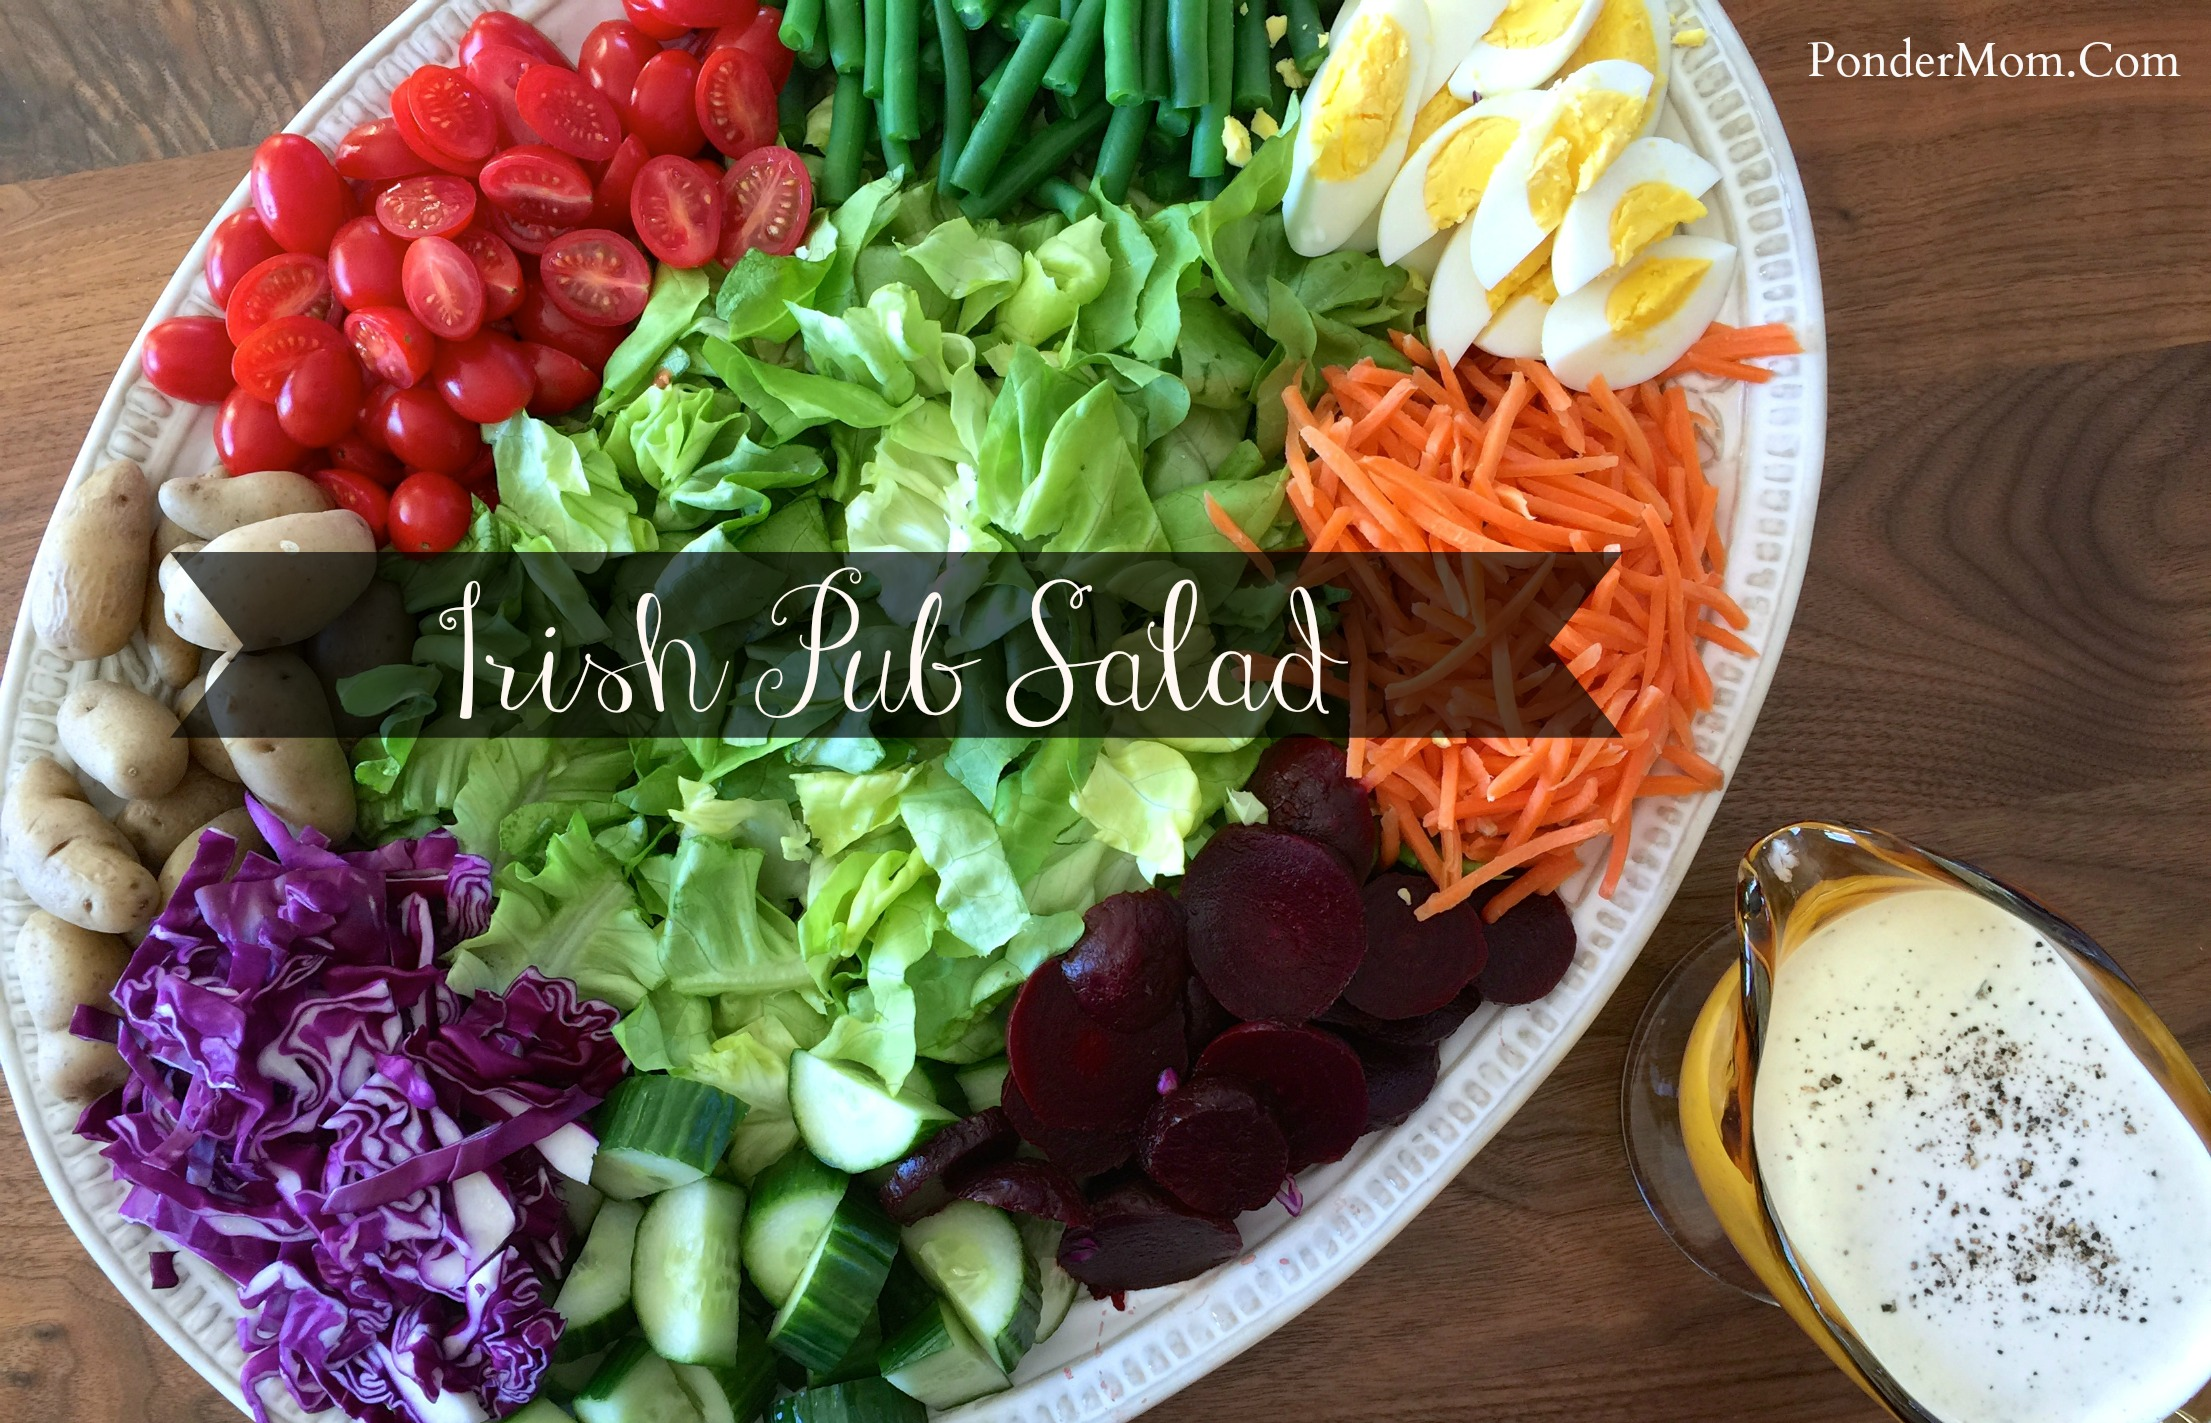 A Saint Patrick's Day Series of Side Dishes and Desserts: Irish Pub Salad